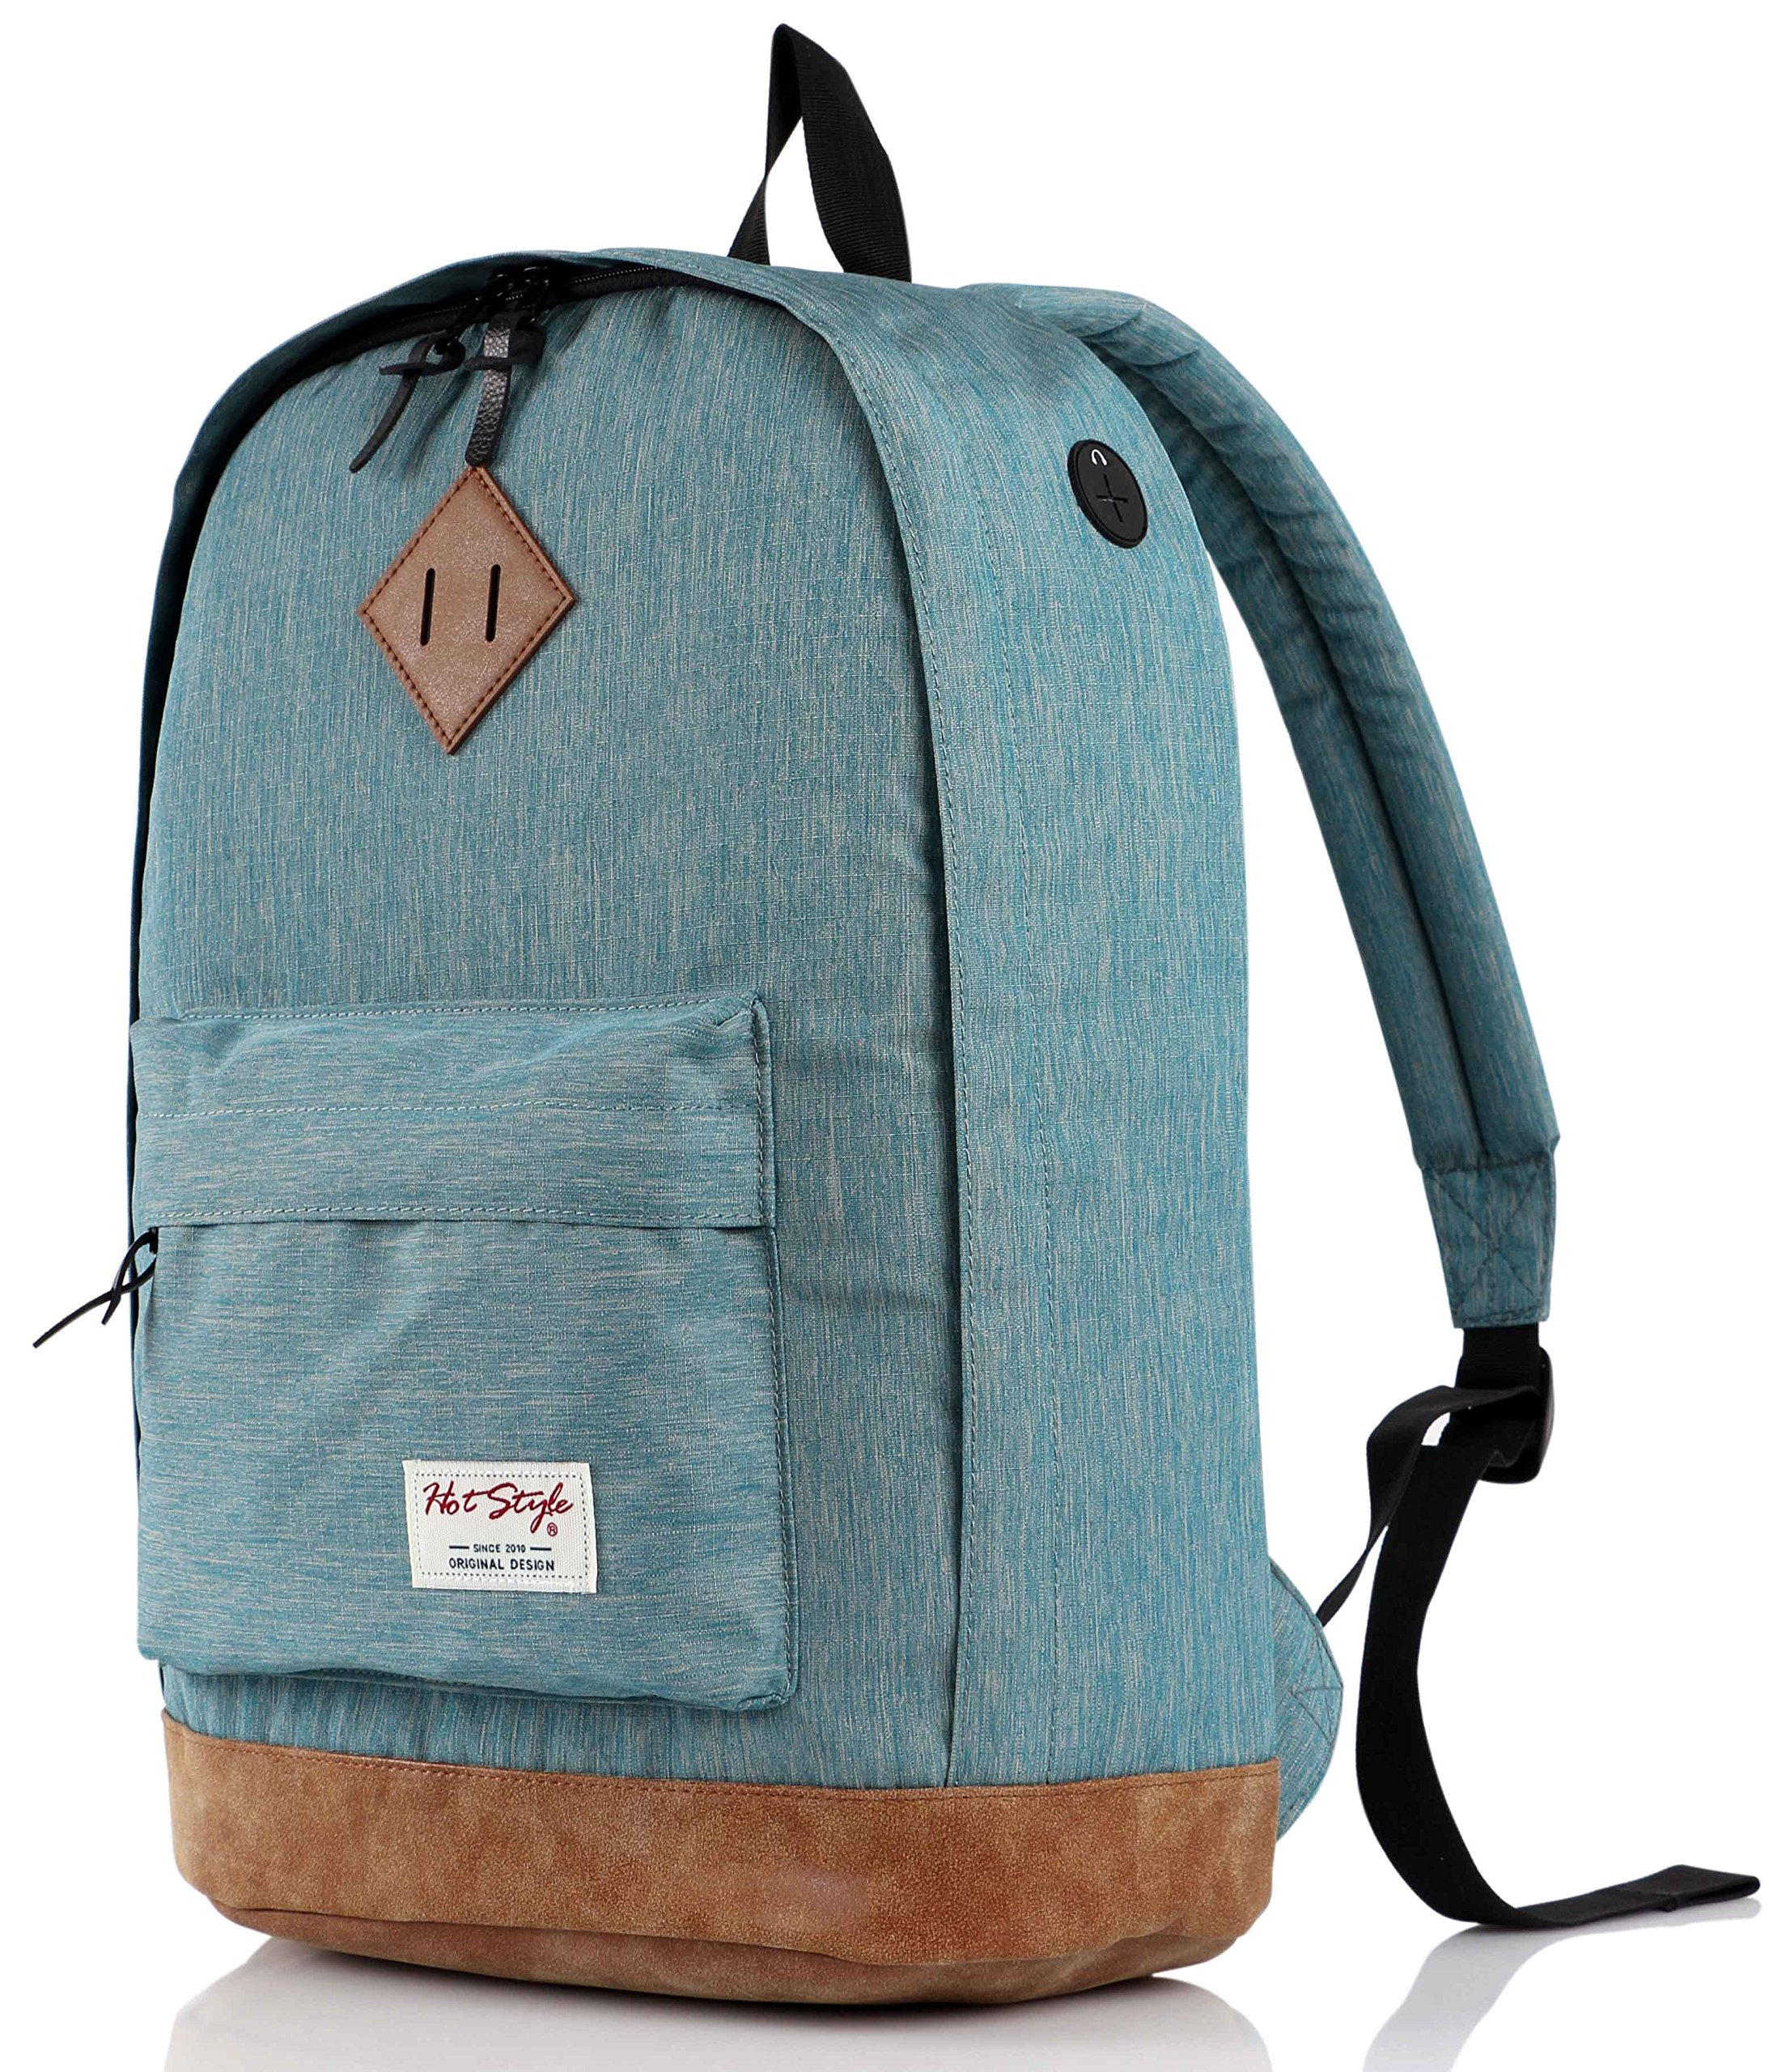 936Plus College Backpack High School Bookbag, LightTurquoise by HotStyle